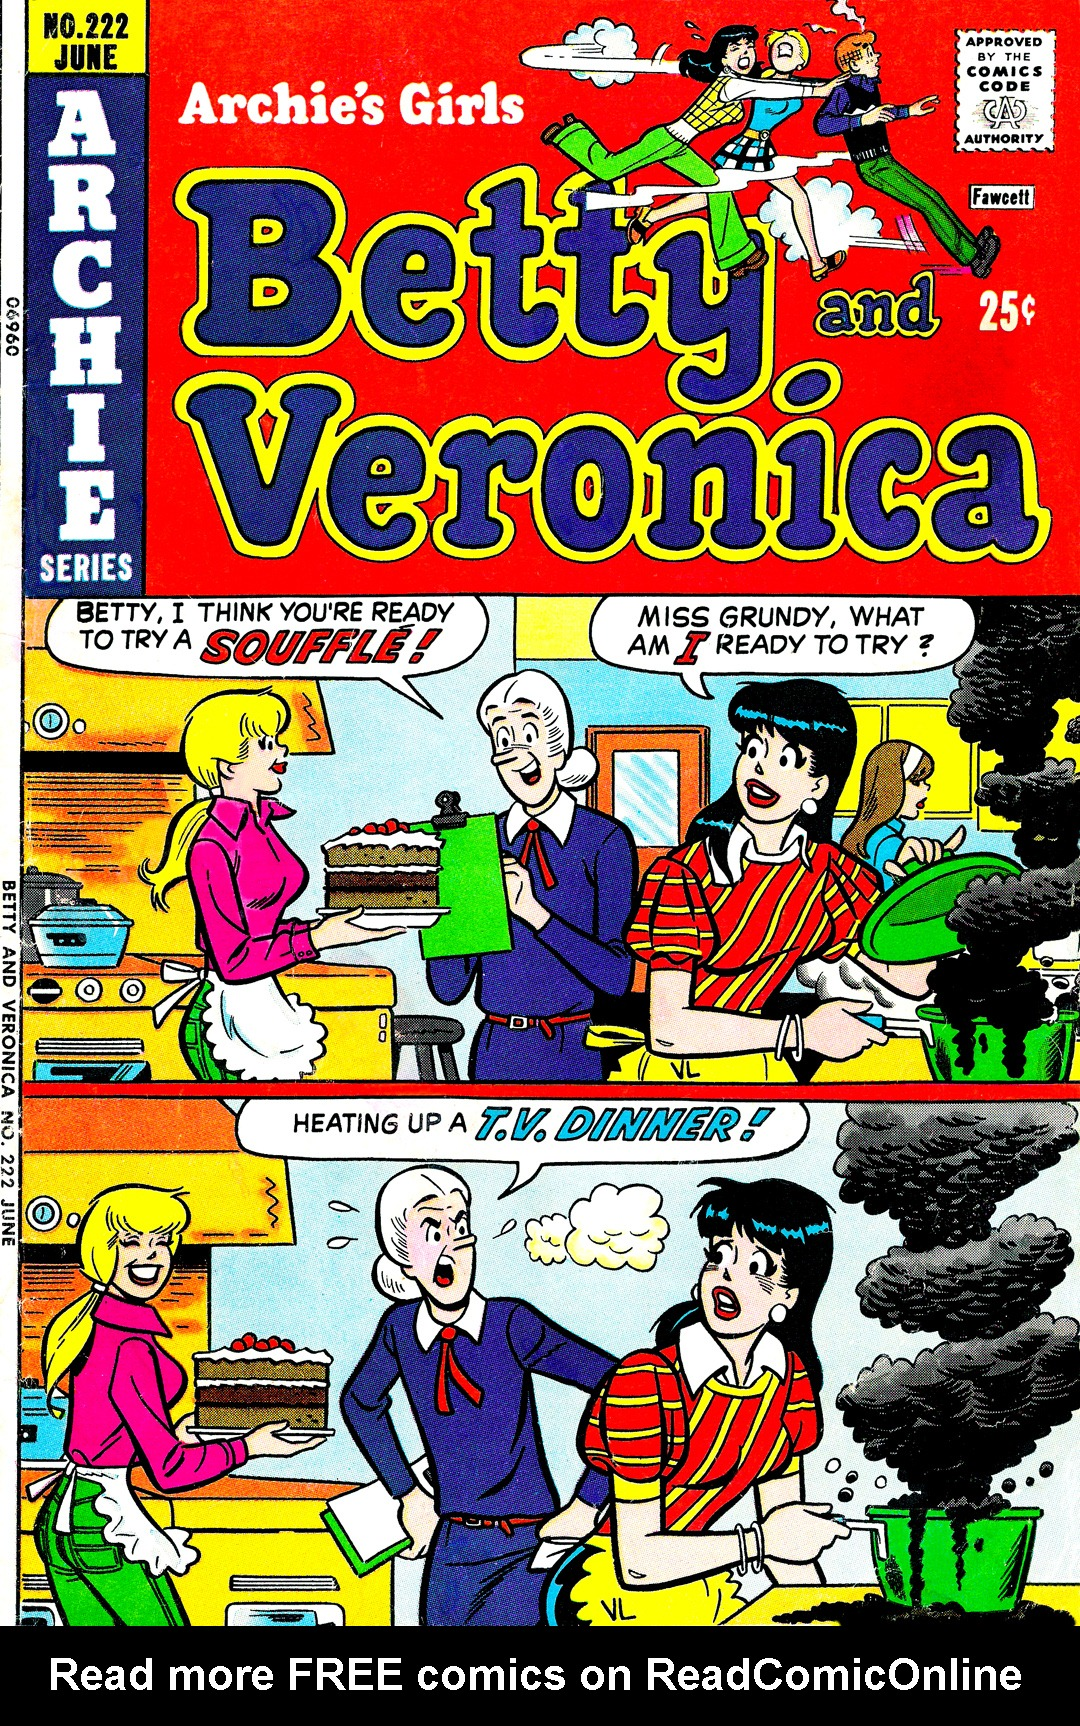 Read online Archie's Girls Betty and Veronica comic -  Issue #222 - 1